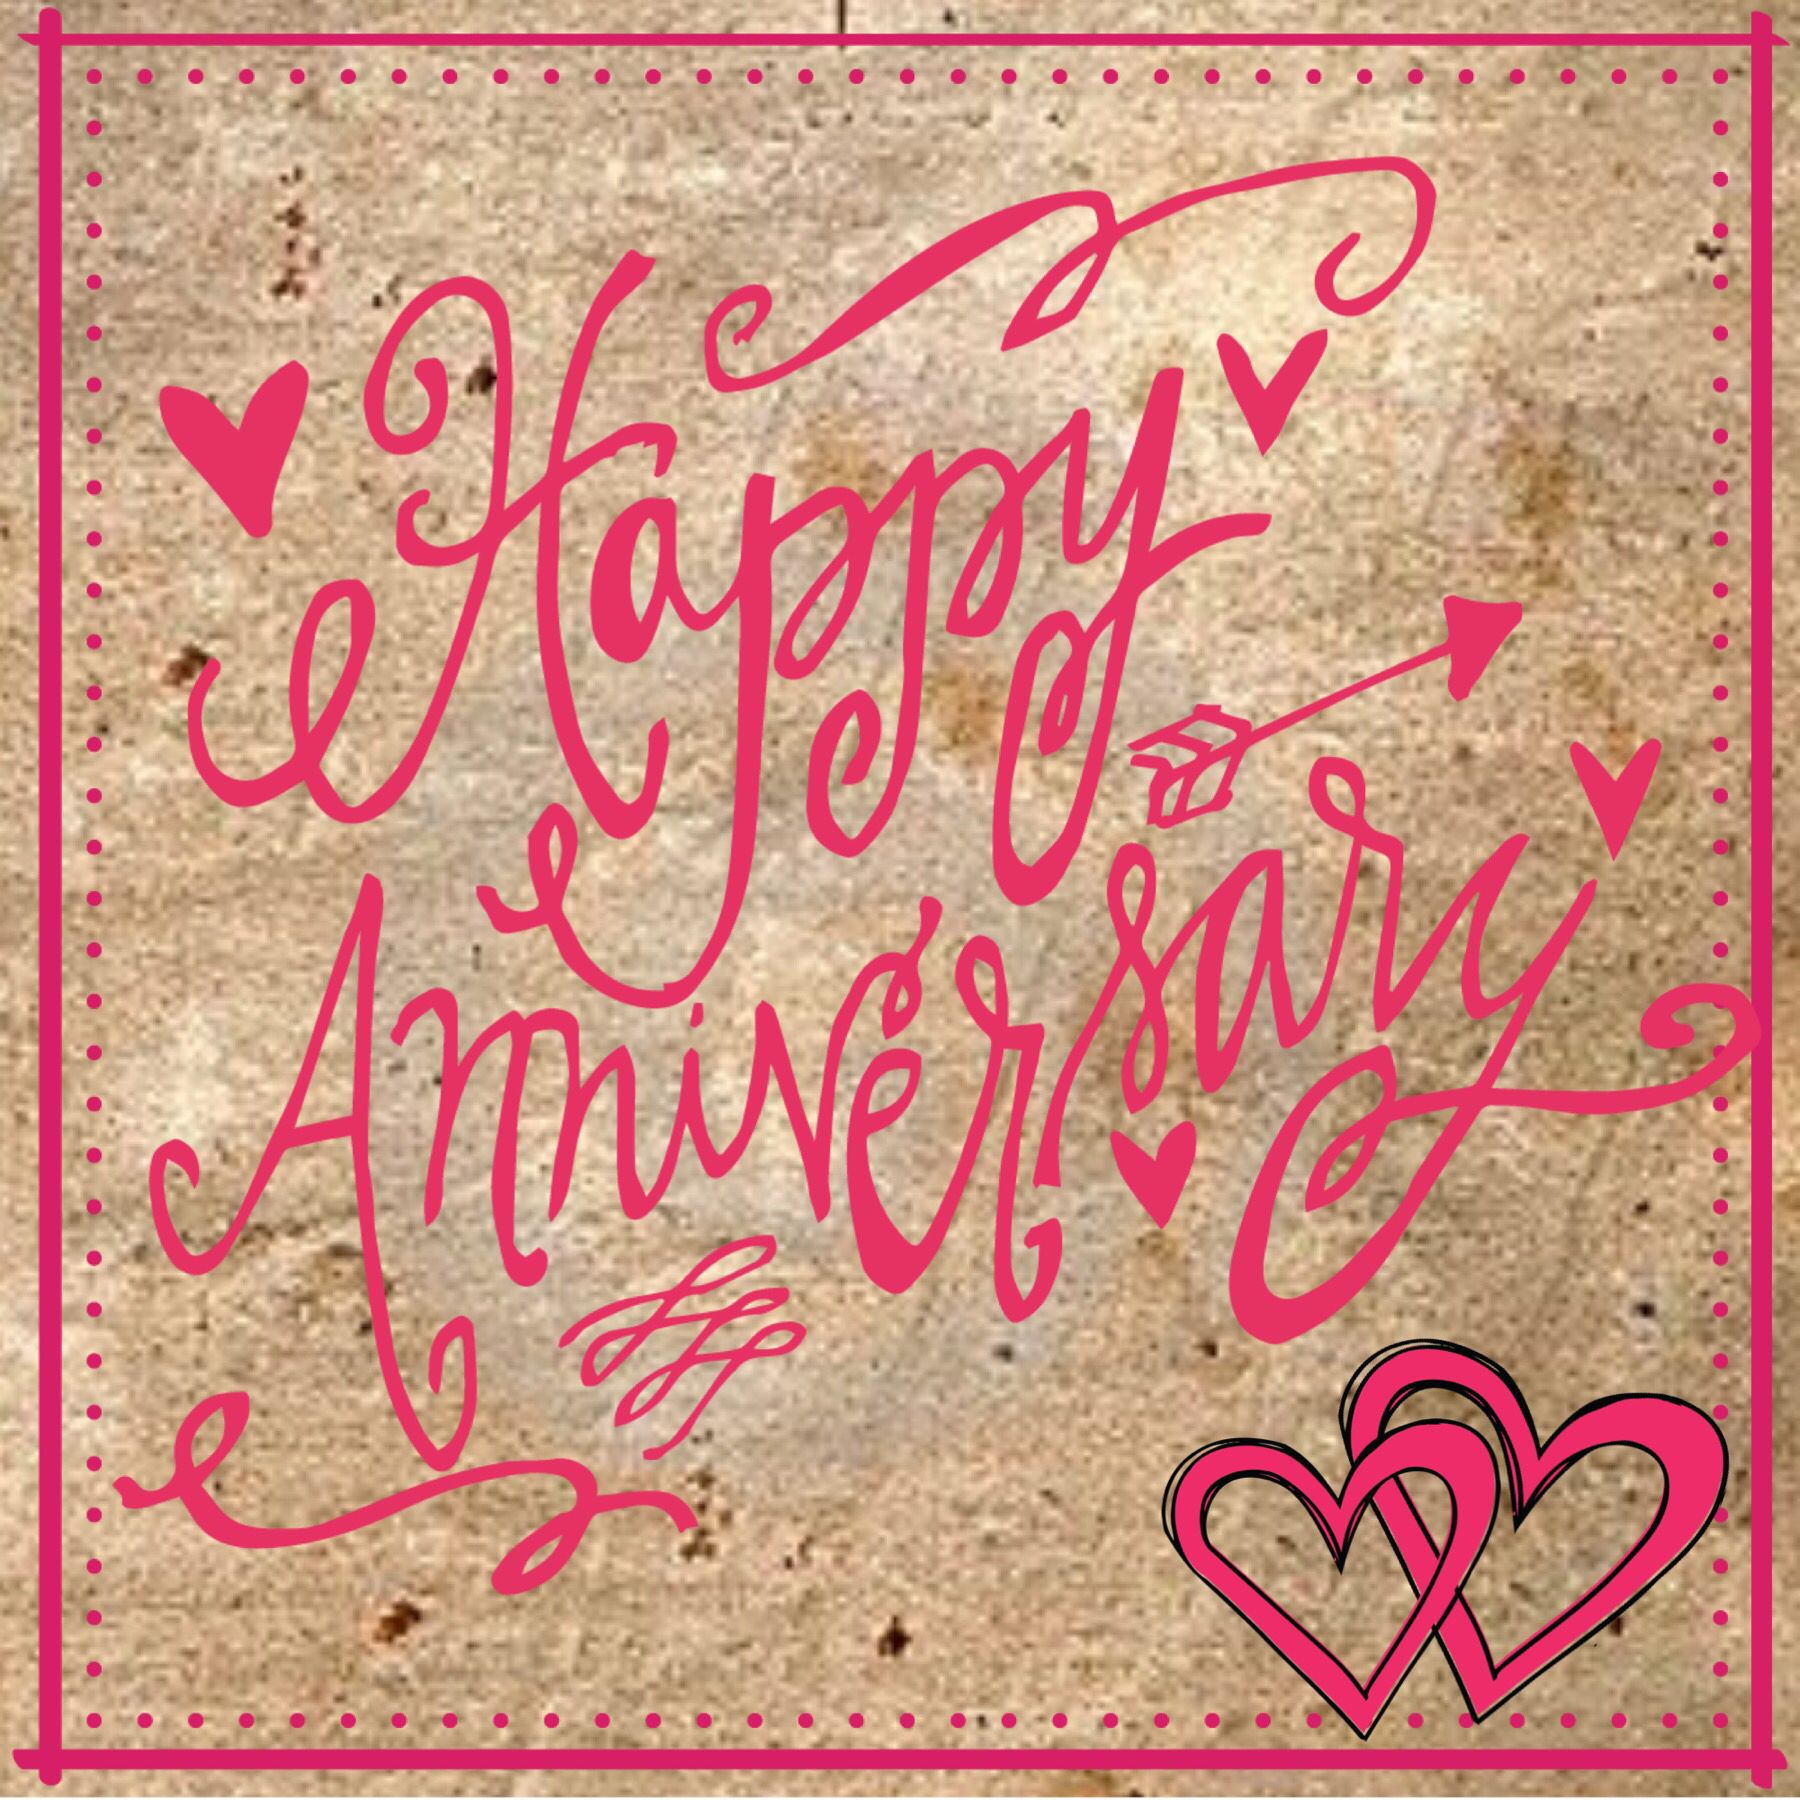 Pin by diana miller on anniversary pinterest anniversaries anniversary cards anniversary greetings anniversary ideas wedding anniversary happy birthday cards happy birthdays birthday wishes greeting card kristyandbryce Image collections